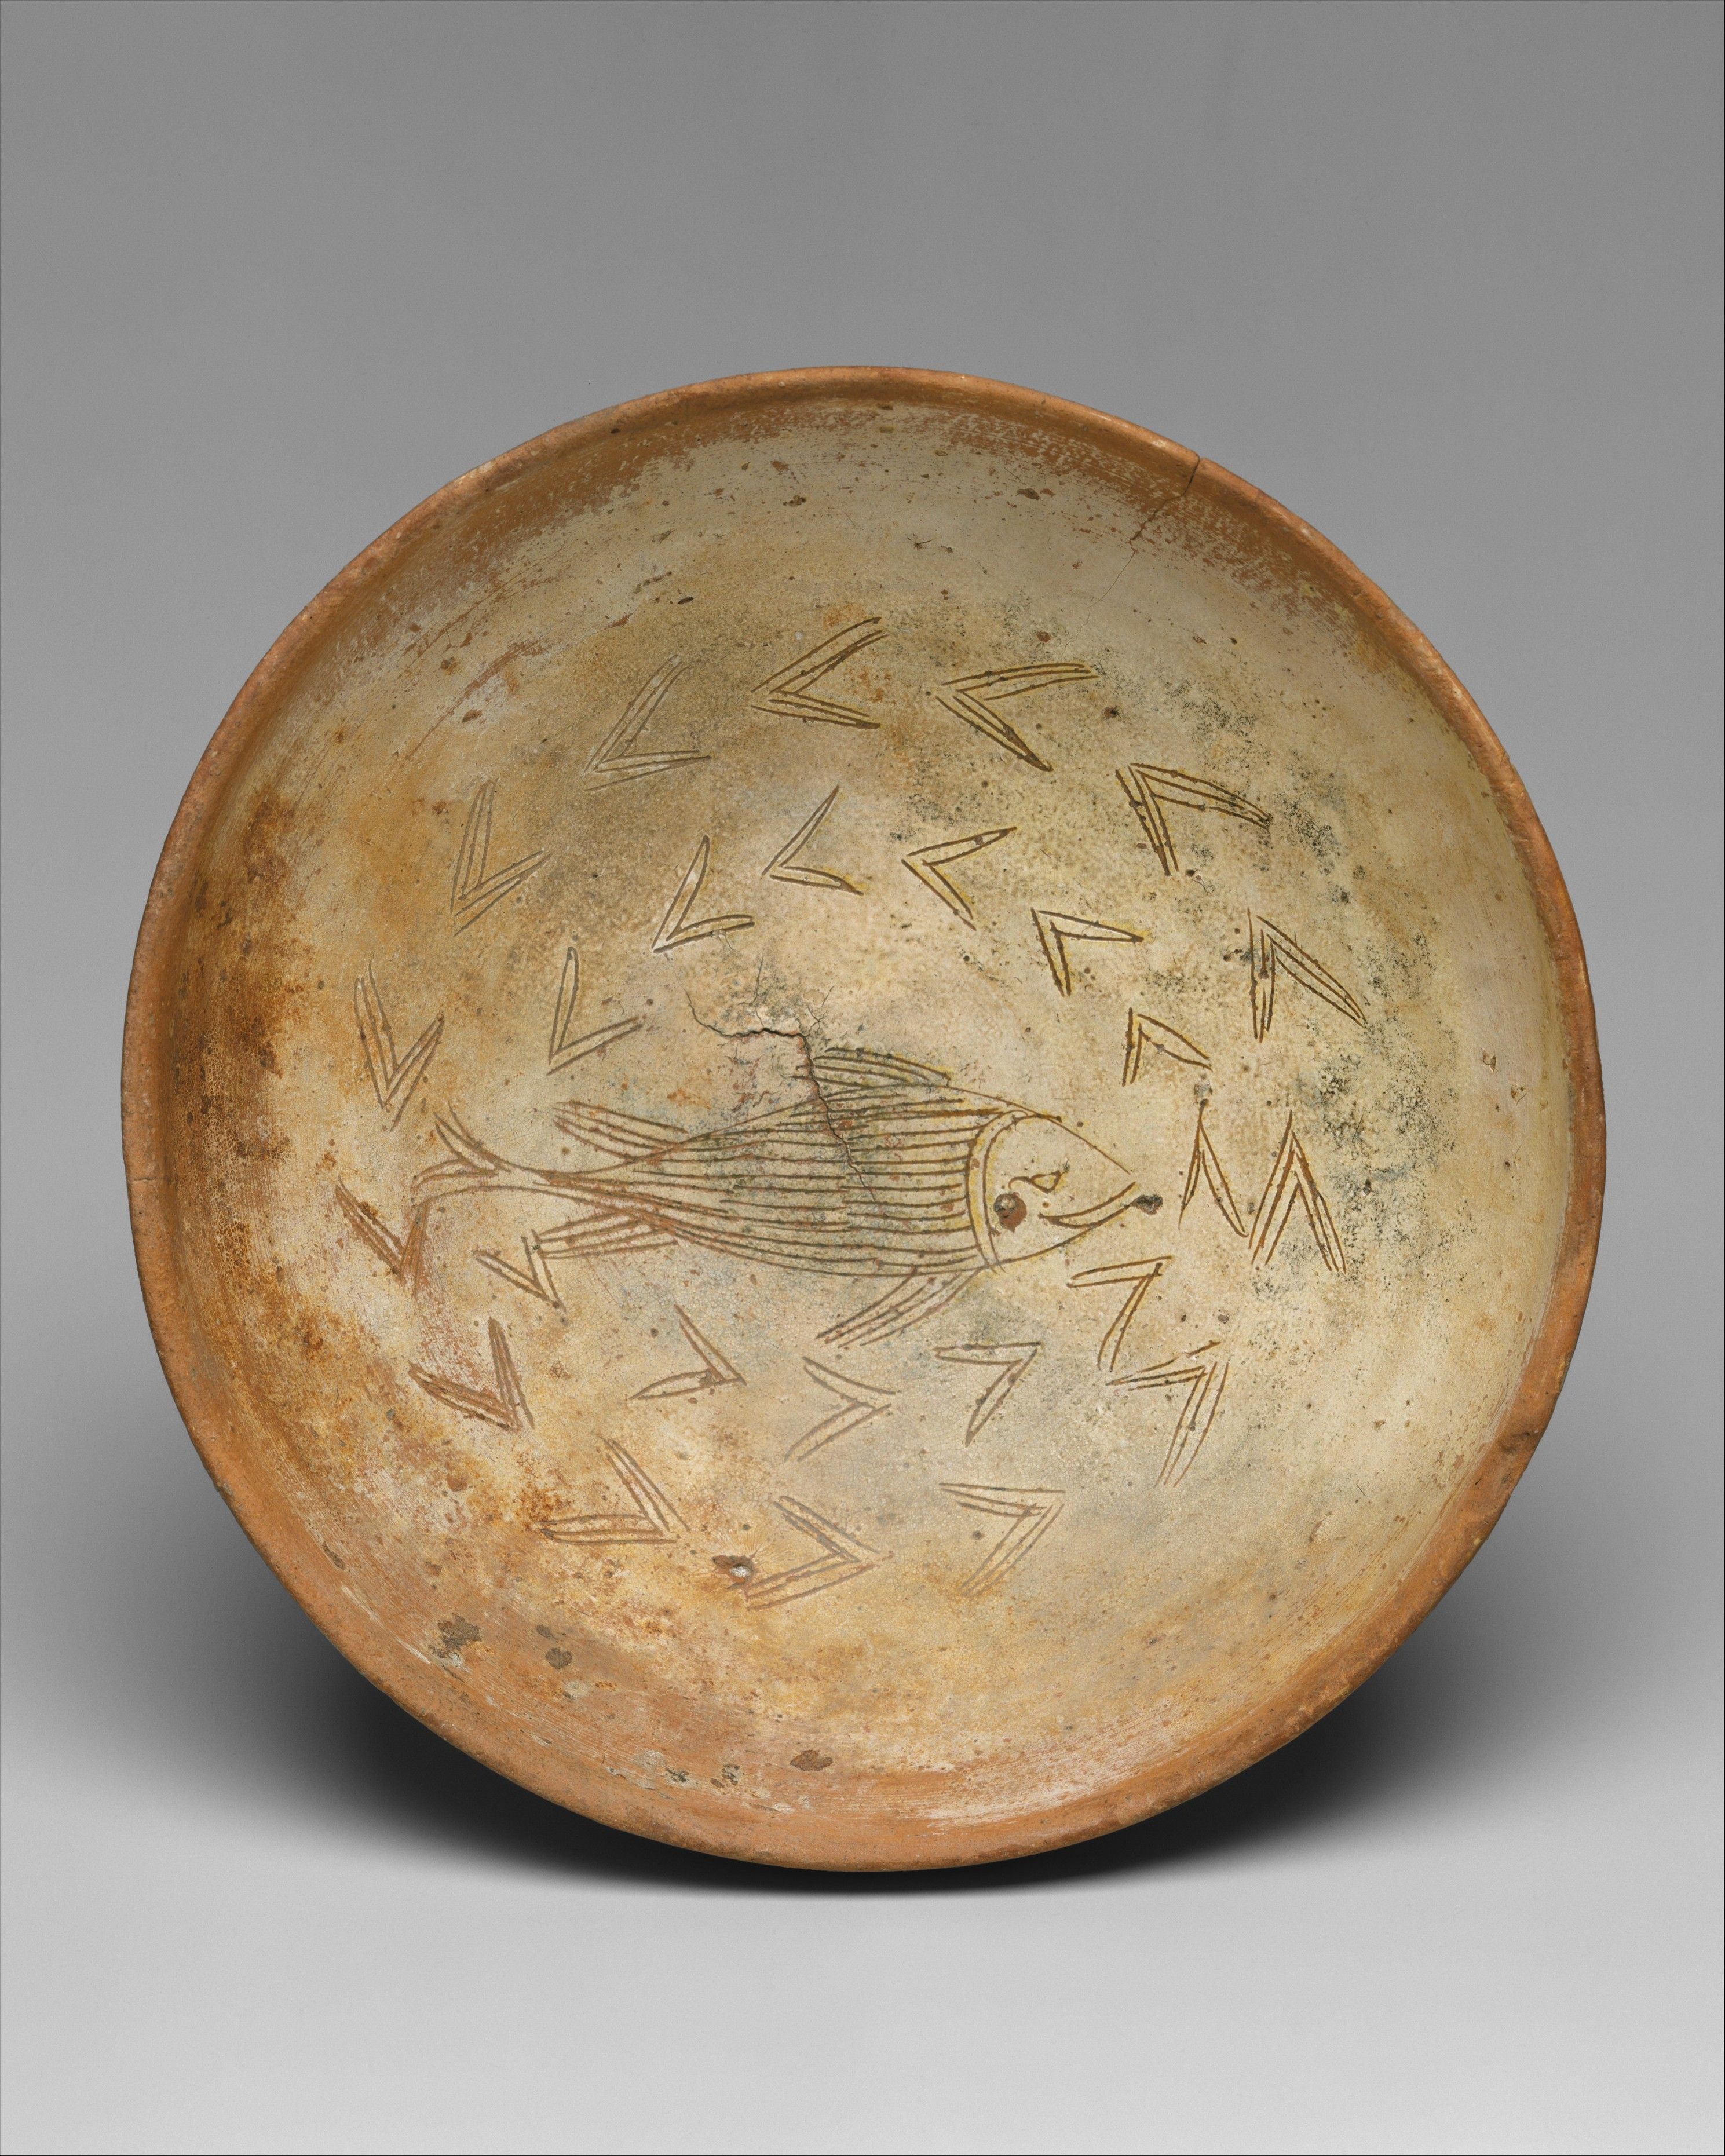 Bowl with Fish | Byzantine | The Met